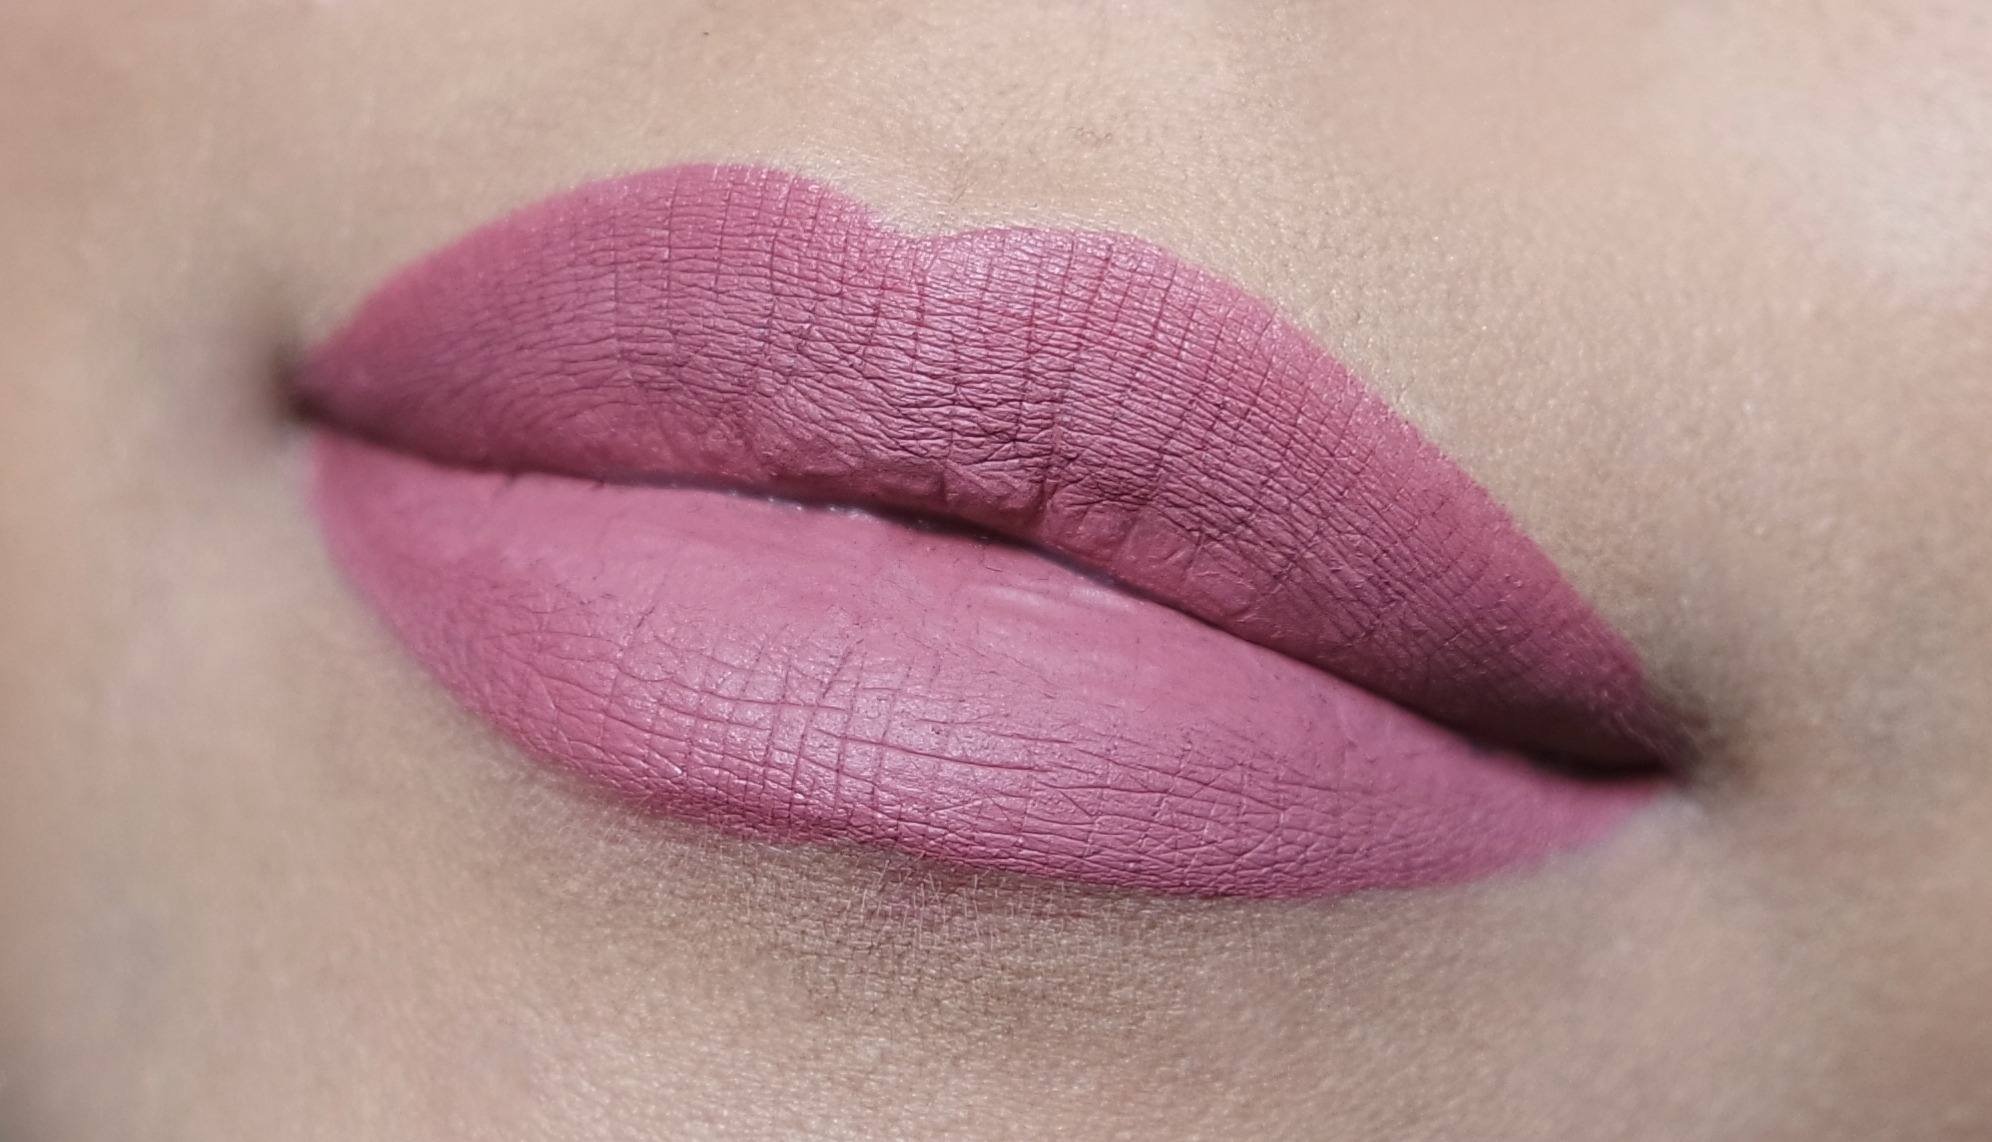 Bien connu Anastasia Liquid Lipstick in Dusty Rose - The Beautynerd ML41